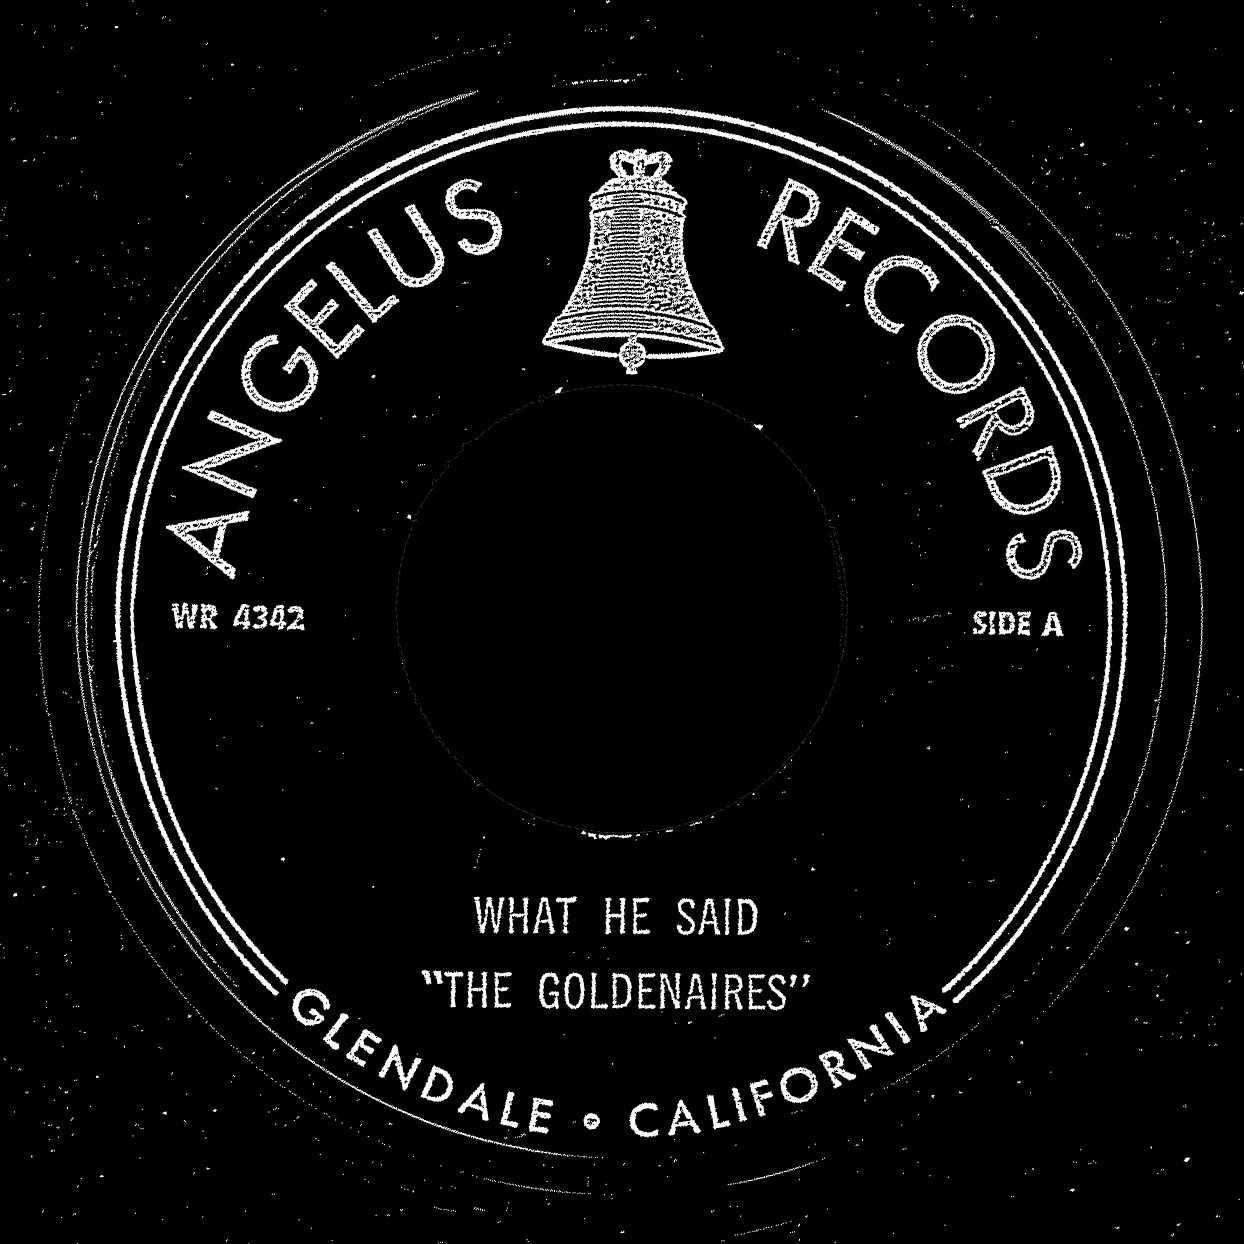 The Goldenaires' Angelus Records 45